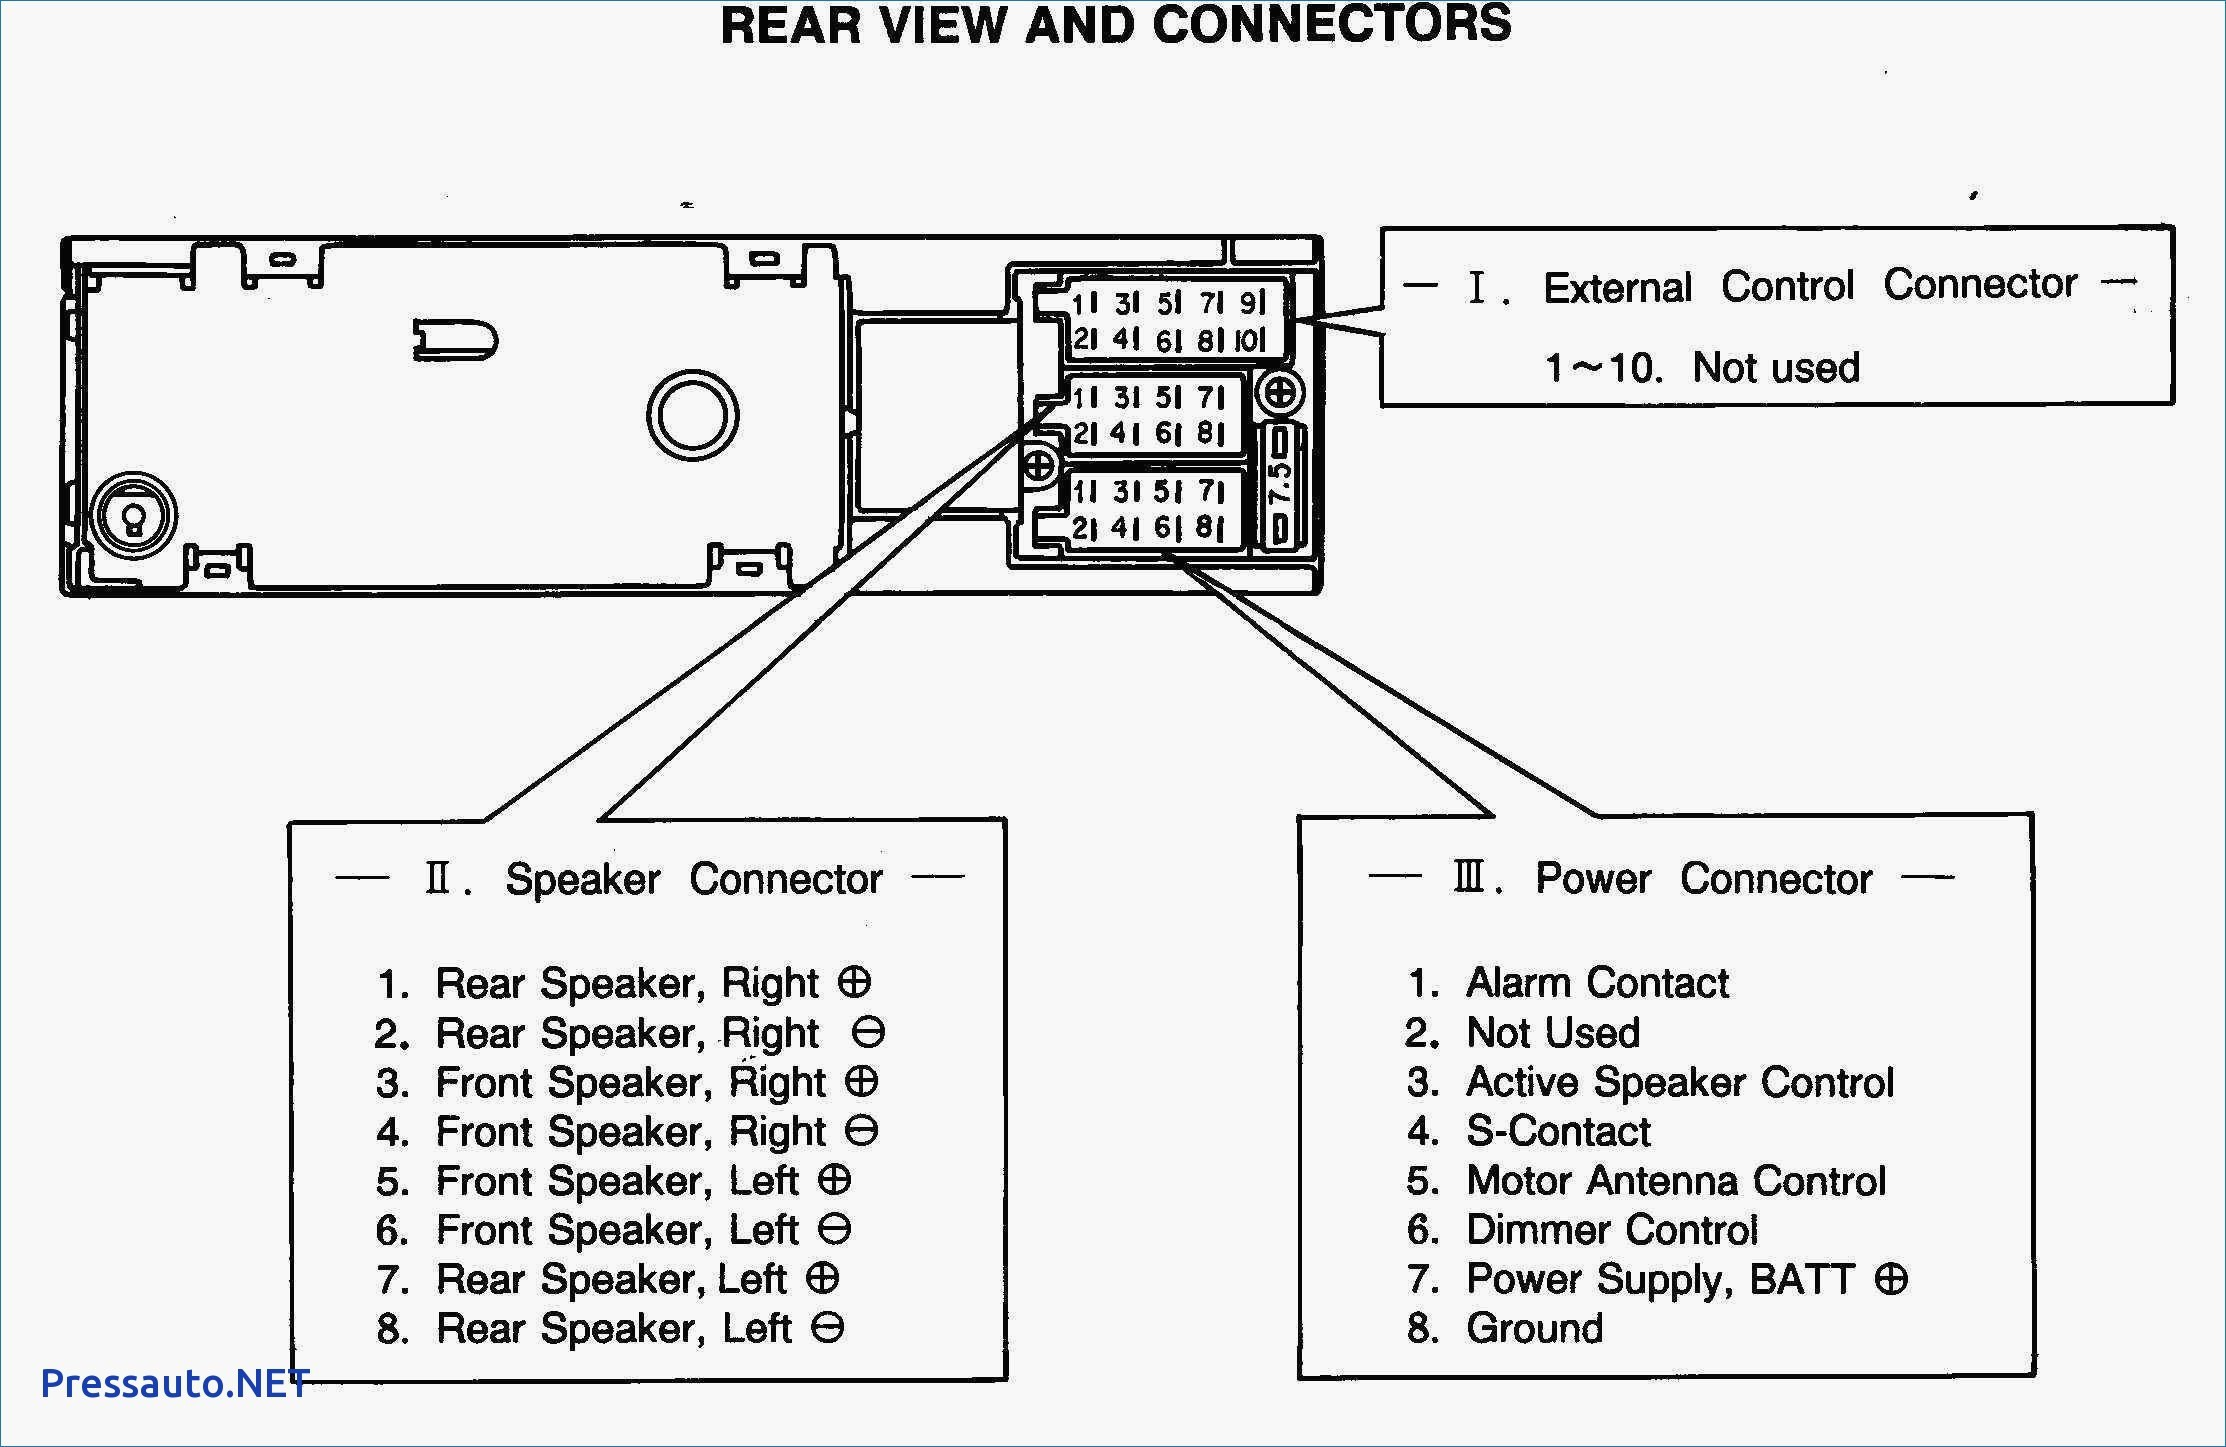 Car Audio Crossover Installation Diagram Car Diagram Awesome Kenwood Car Audio Wiring Diagram Image Ideas Of Car Audio Crossover Installation Diagram